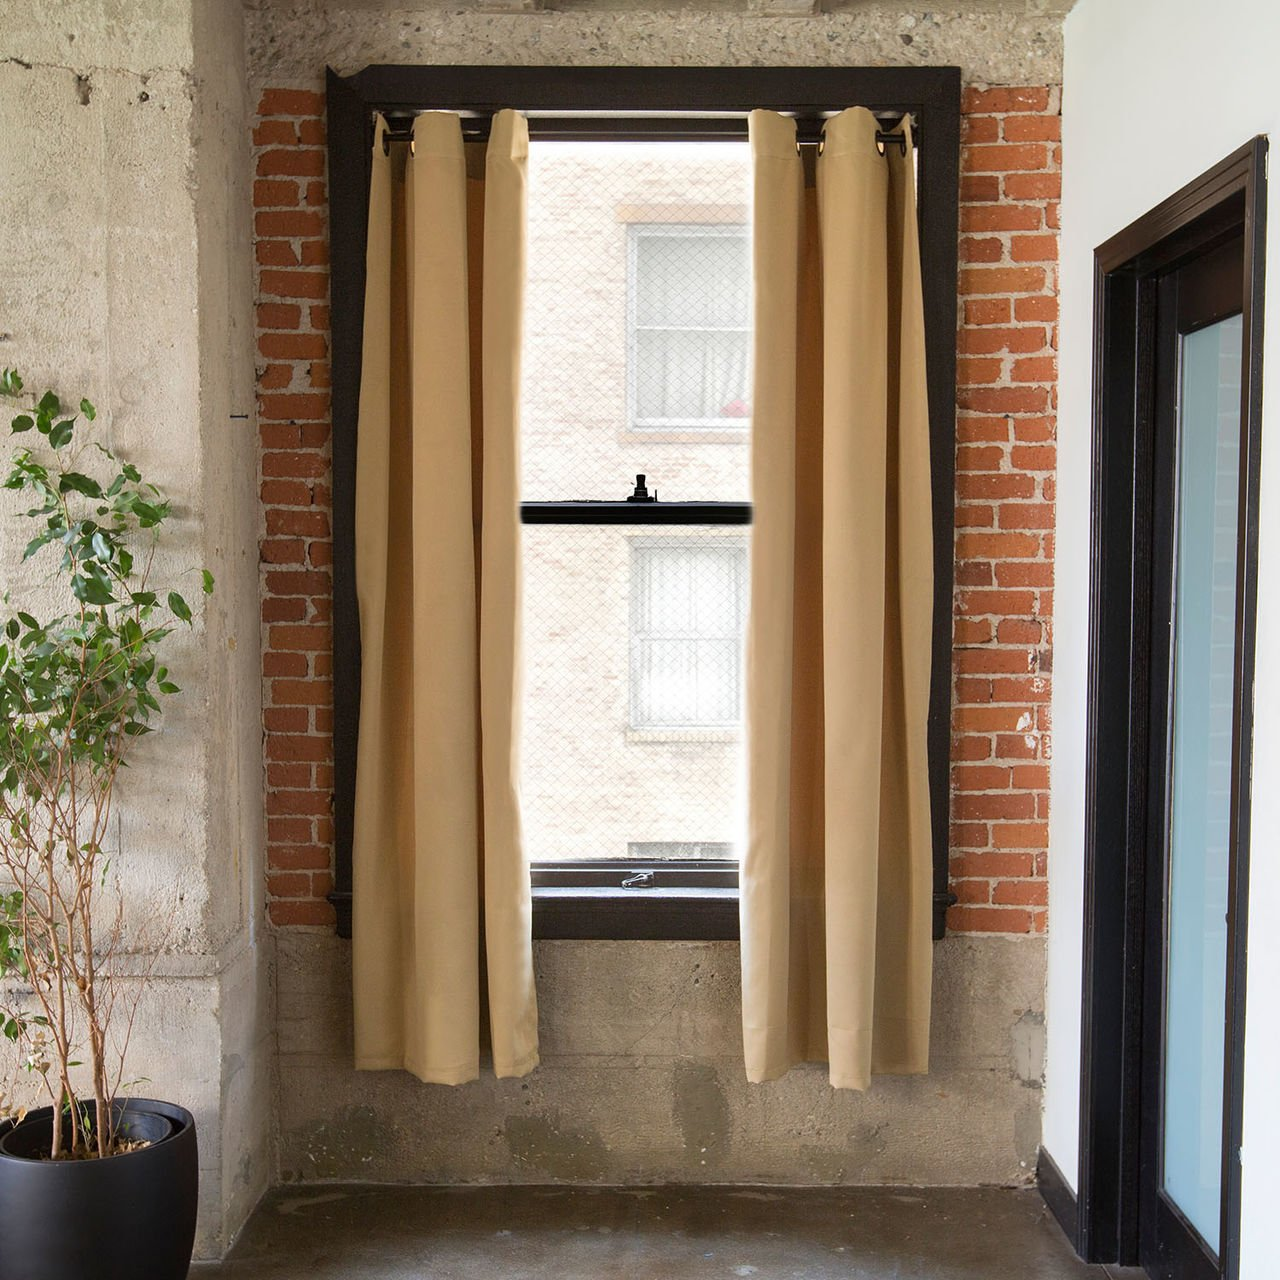 CurtainKitsNow Premium Heavyweight Tension Rod Curtain Kit - Large C, Includes Two Wheat 96'' x 50'' Wide Panels & One 80'' - 100'' Tension Rod)